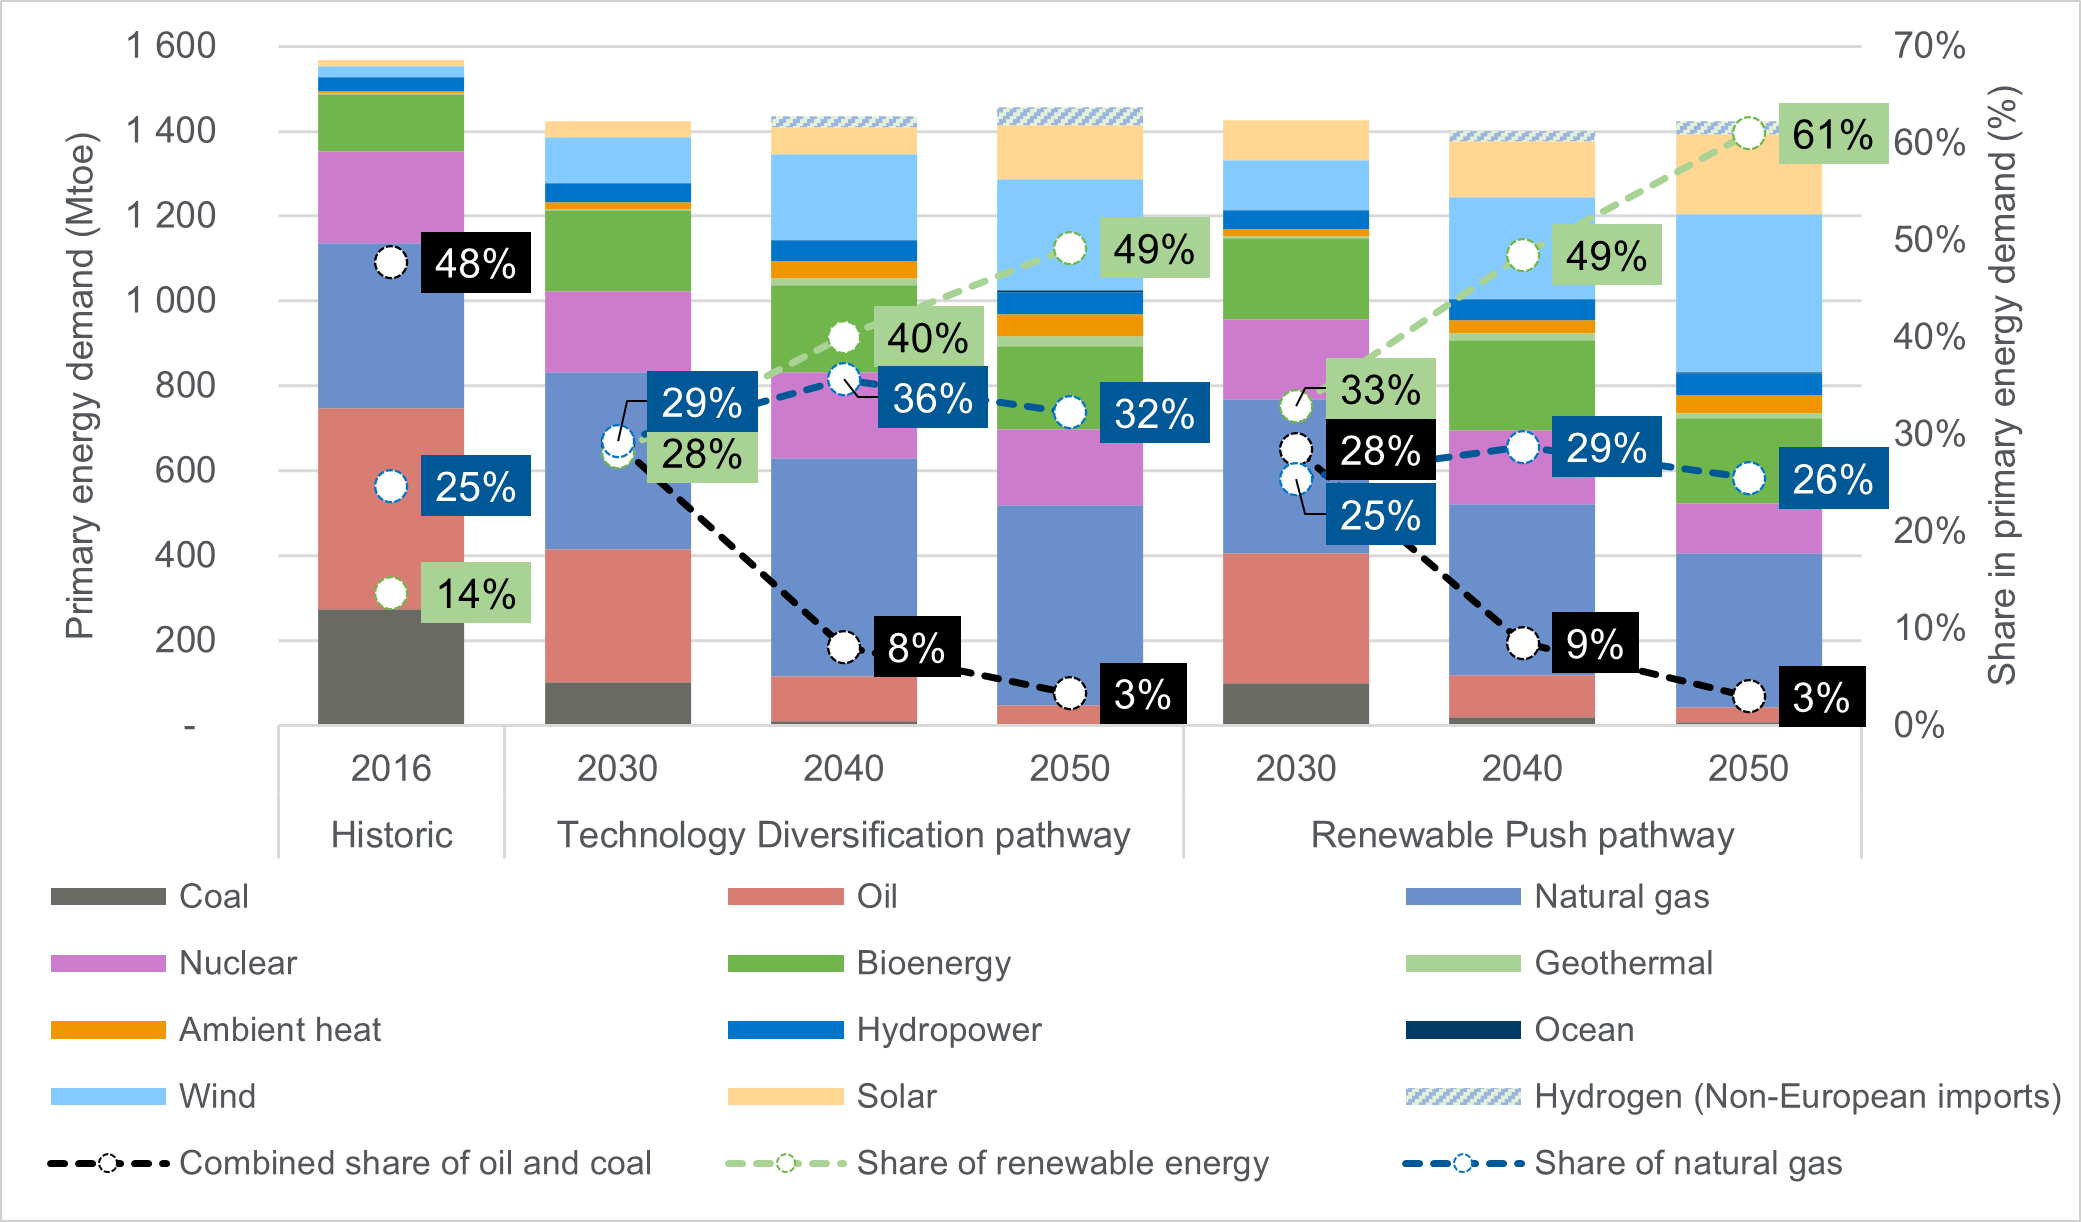 Evolution of total primary energy demand in the Technology Diversification and Renewable Push pathways, 2016 to 2050.